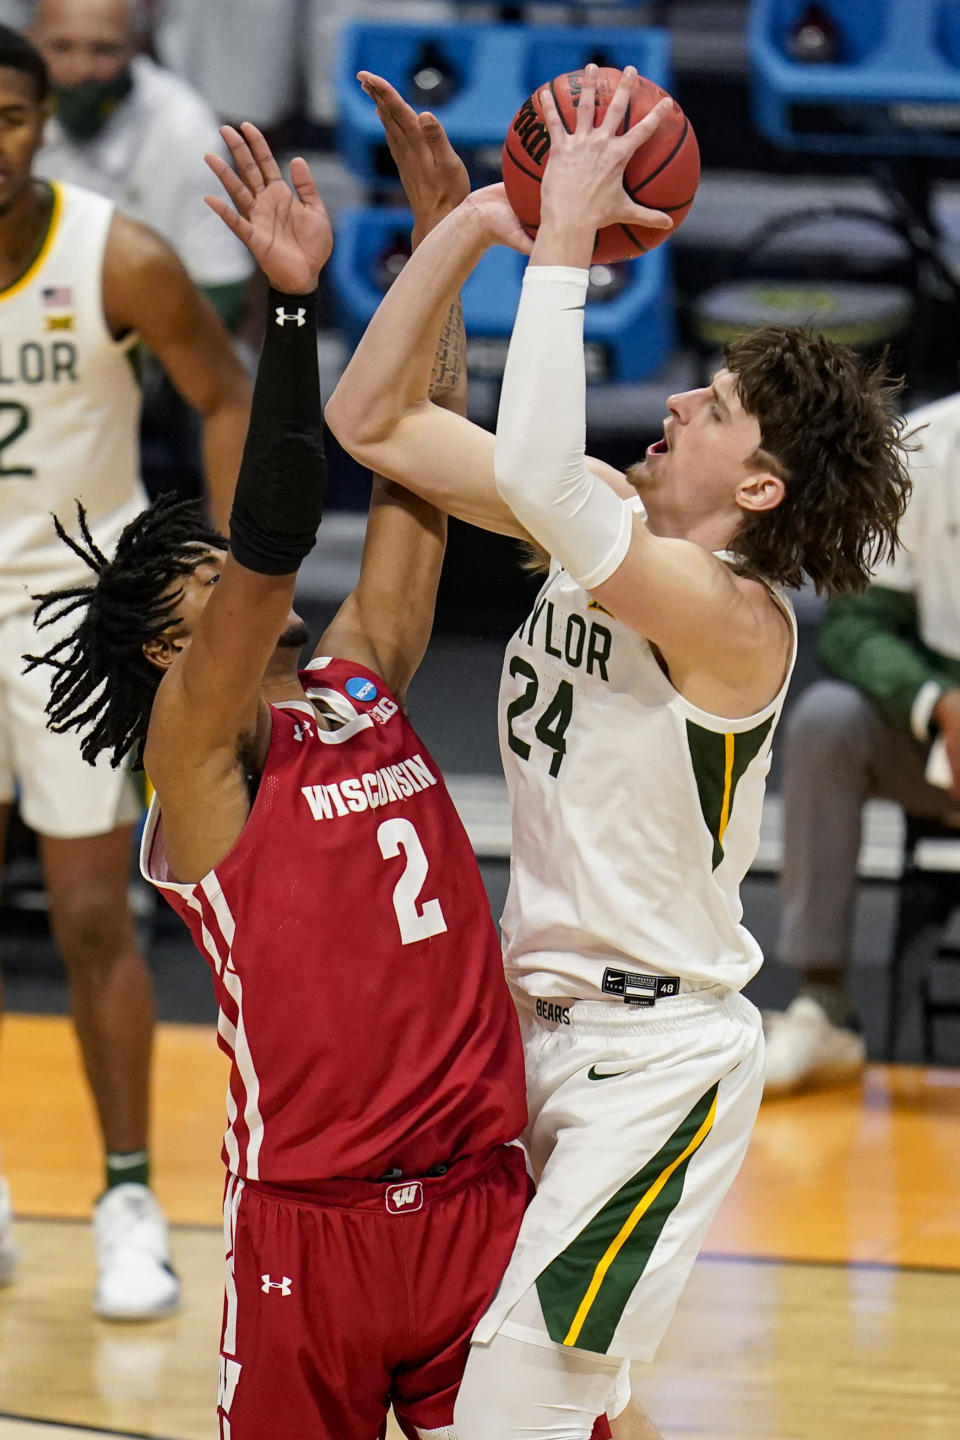 Baylor guard Matthew Mayer (24) shoots over Wisconsin forward Aleem Ford (2) in the second half of a second-round game in the NCAA men's college basketball tournament at Hinkle Fieldhouse in Indianapolis, Sunday, March 21, 2021. (AP Photo/Michael Conroy)